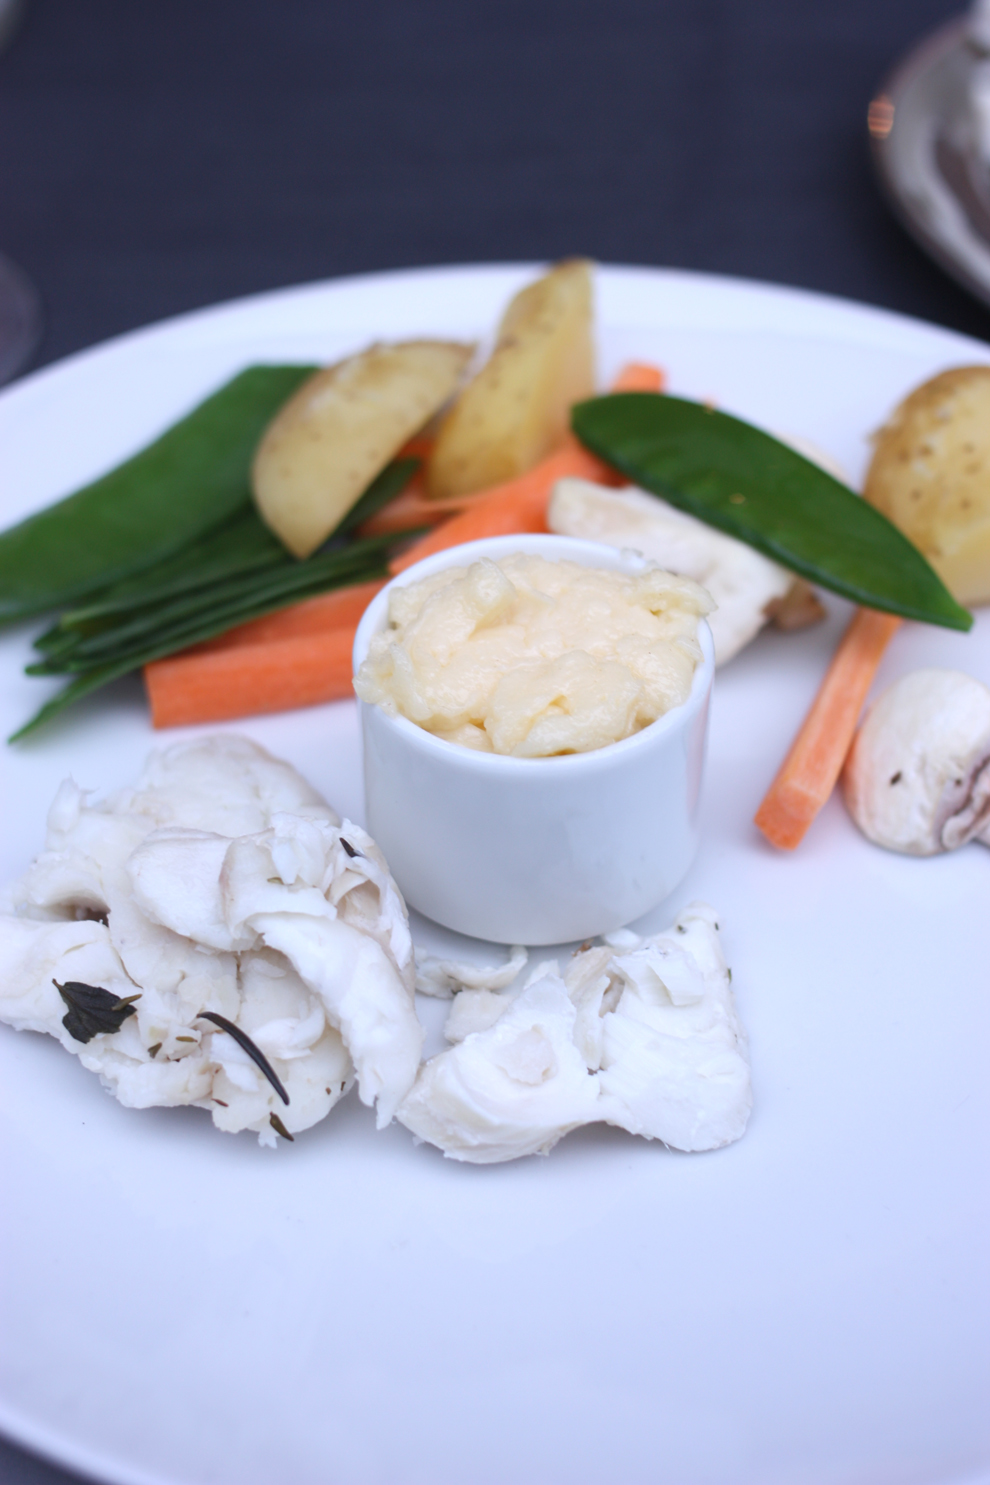 Soiree_provencale_aioli_in_my_plate